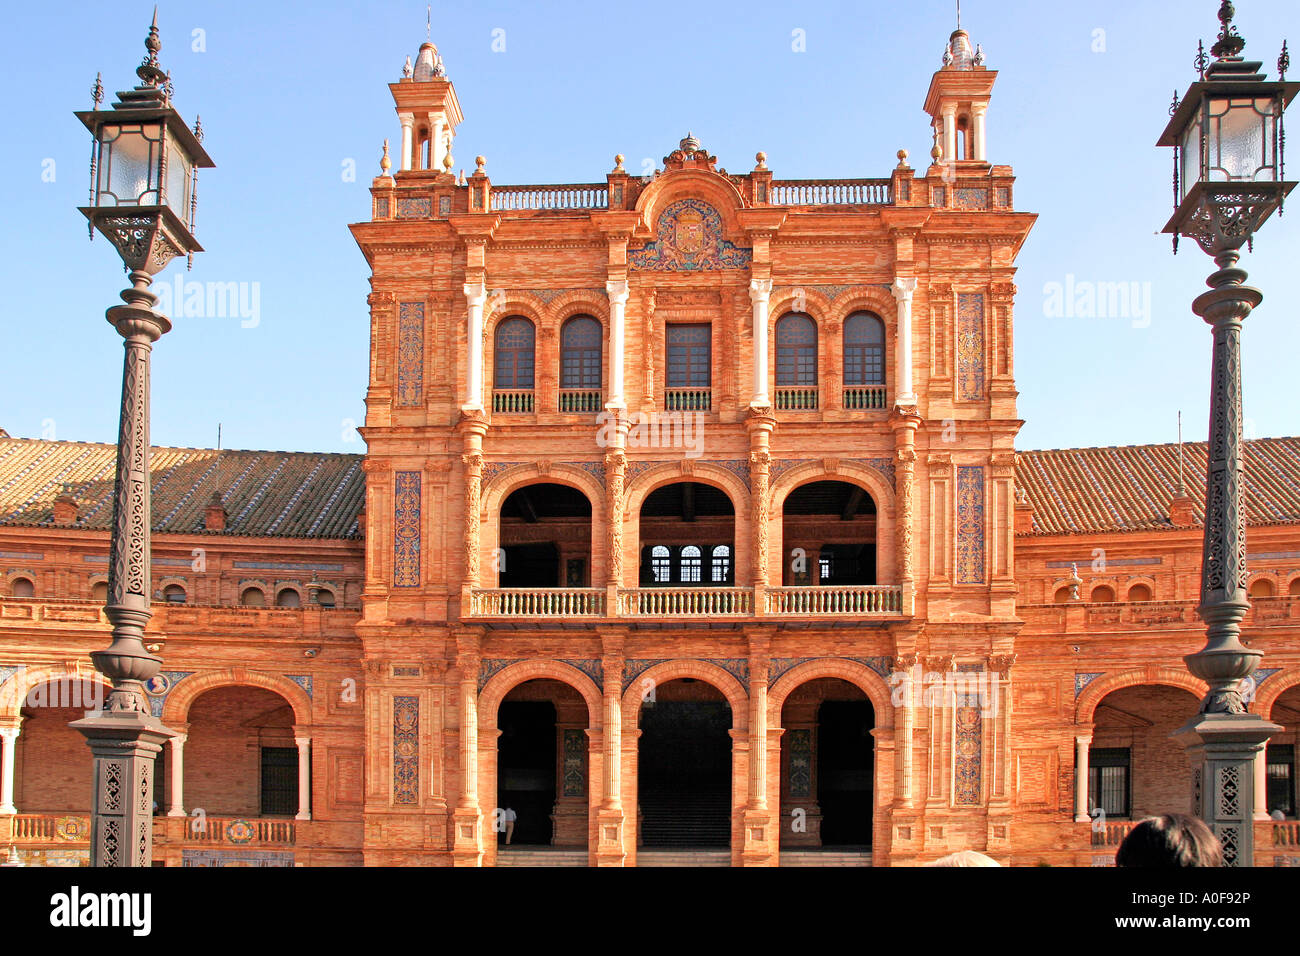 One of the Buildings at Plaza de Espagna Seville Andalucia Spain - Stock Image